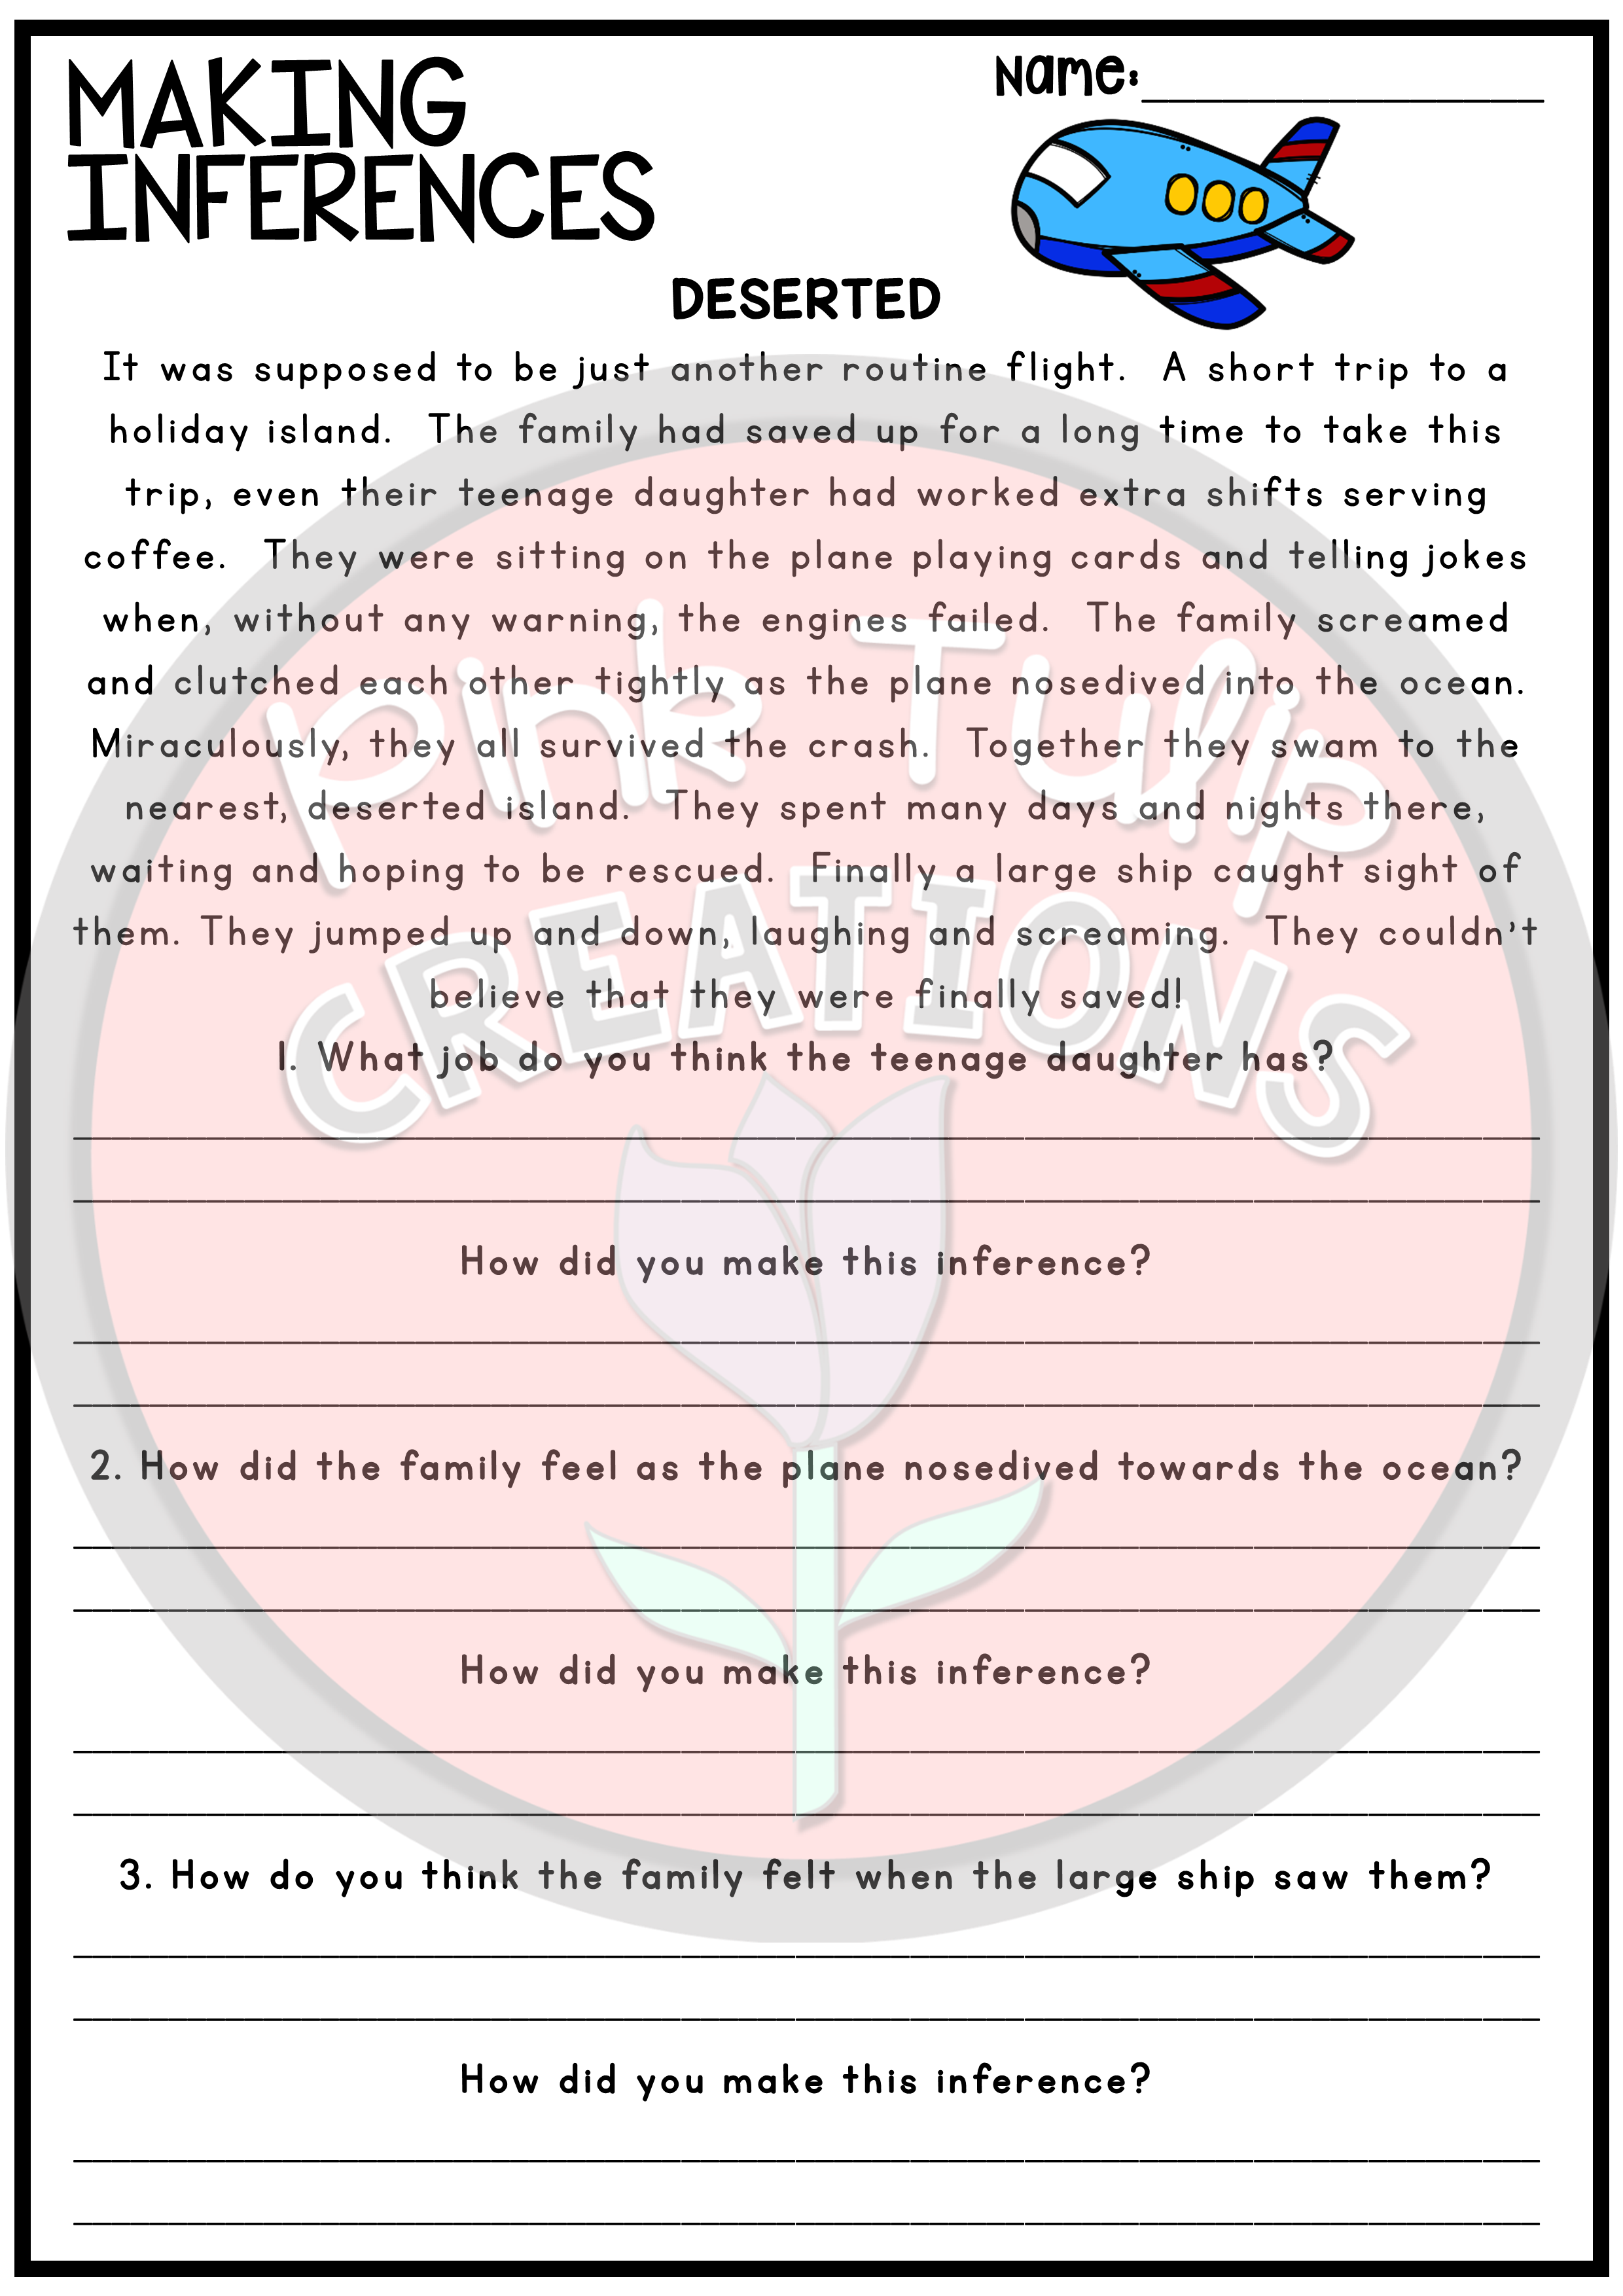 Making Inferences and Drawing Conclusions - Reading Worksheet Pack    Reading worksheets [ 3508 x 2480 Pixel ]